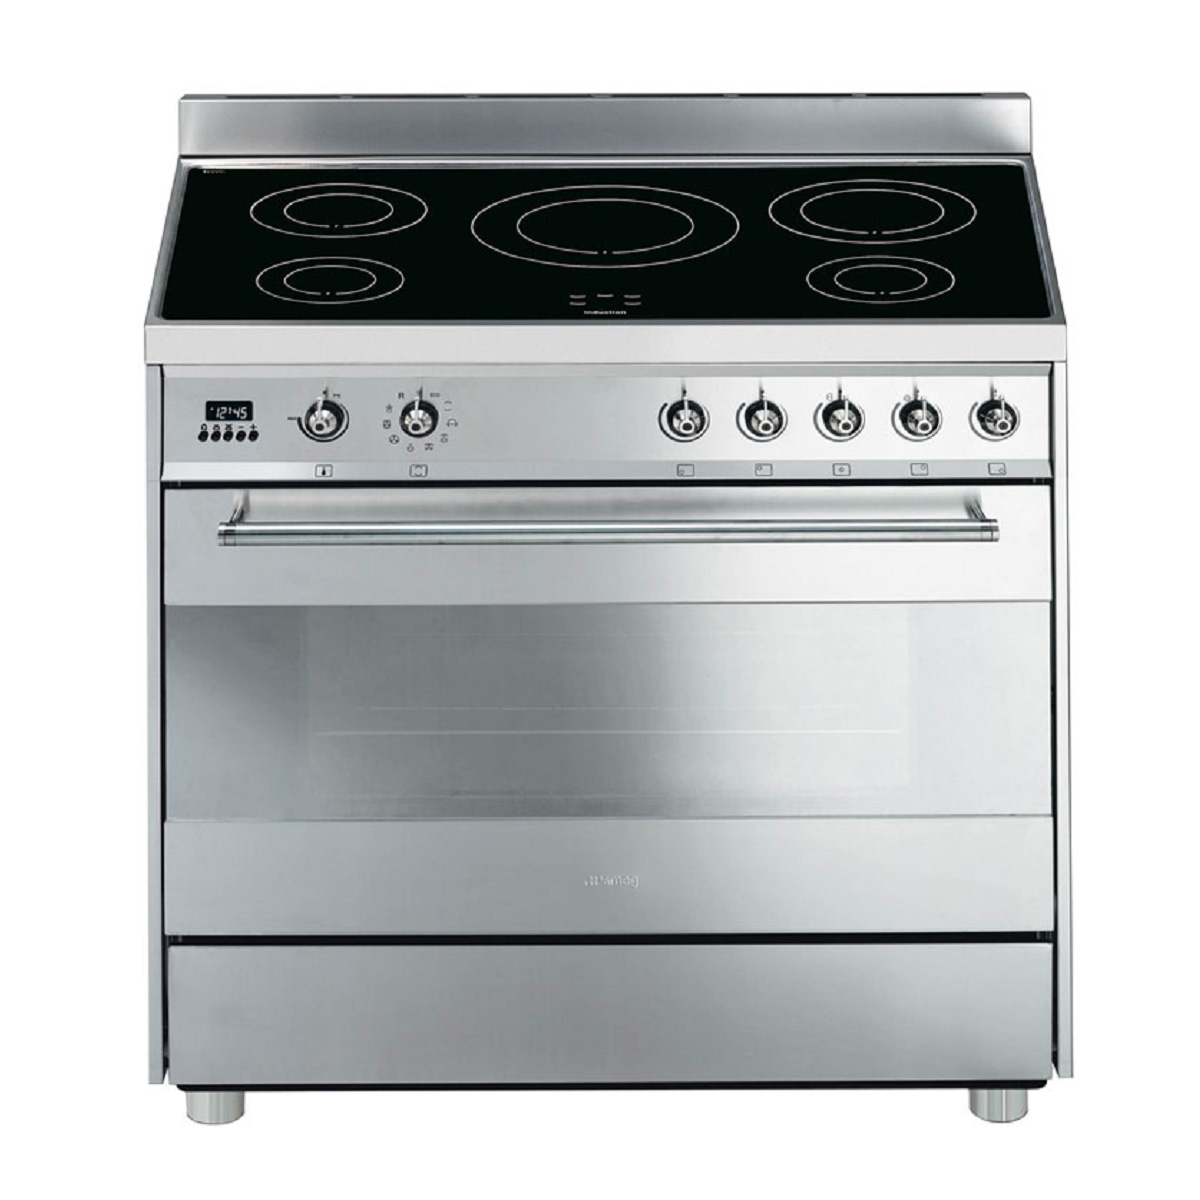 Smeg Electric Stove C9IMXA1